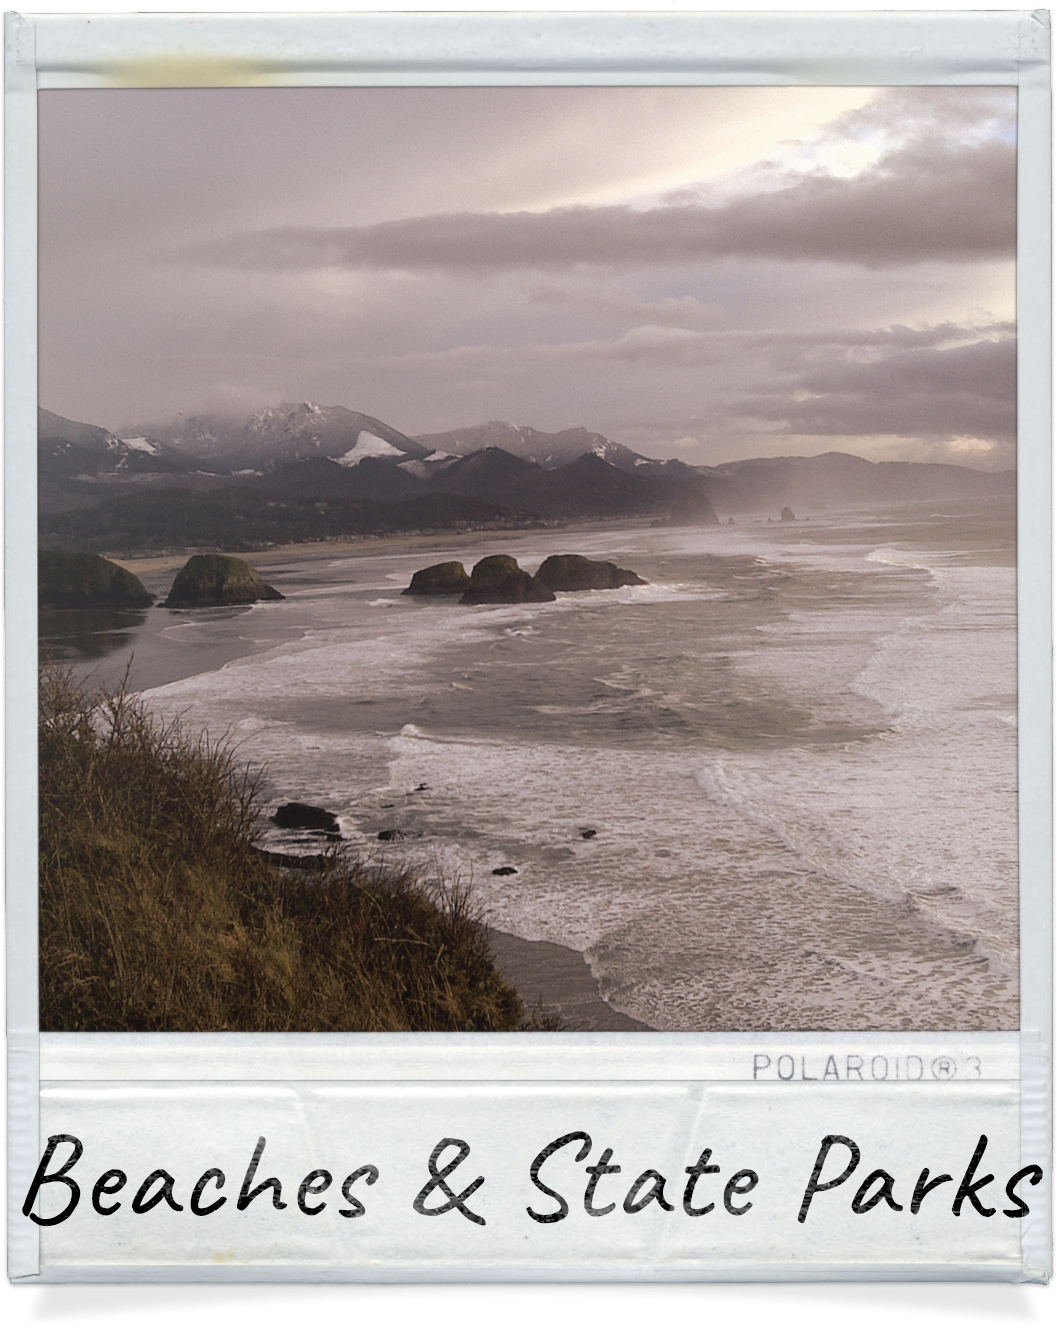 Beaches and State Parks near The Waves Cannon Beach in OR